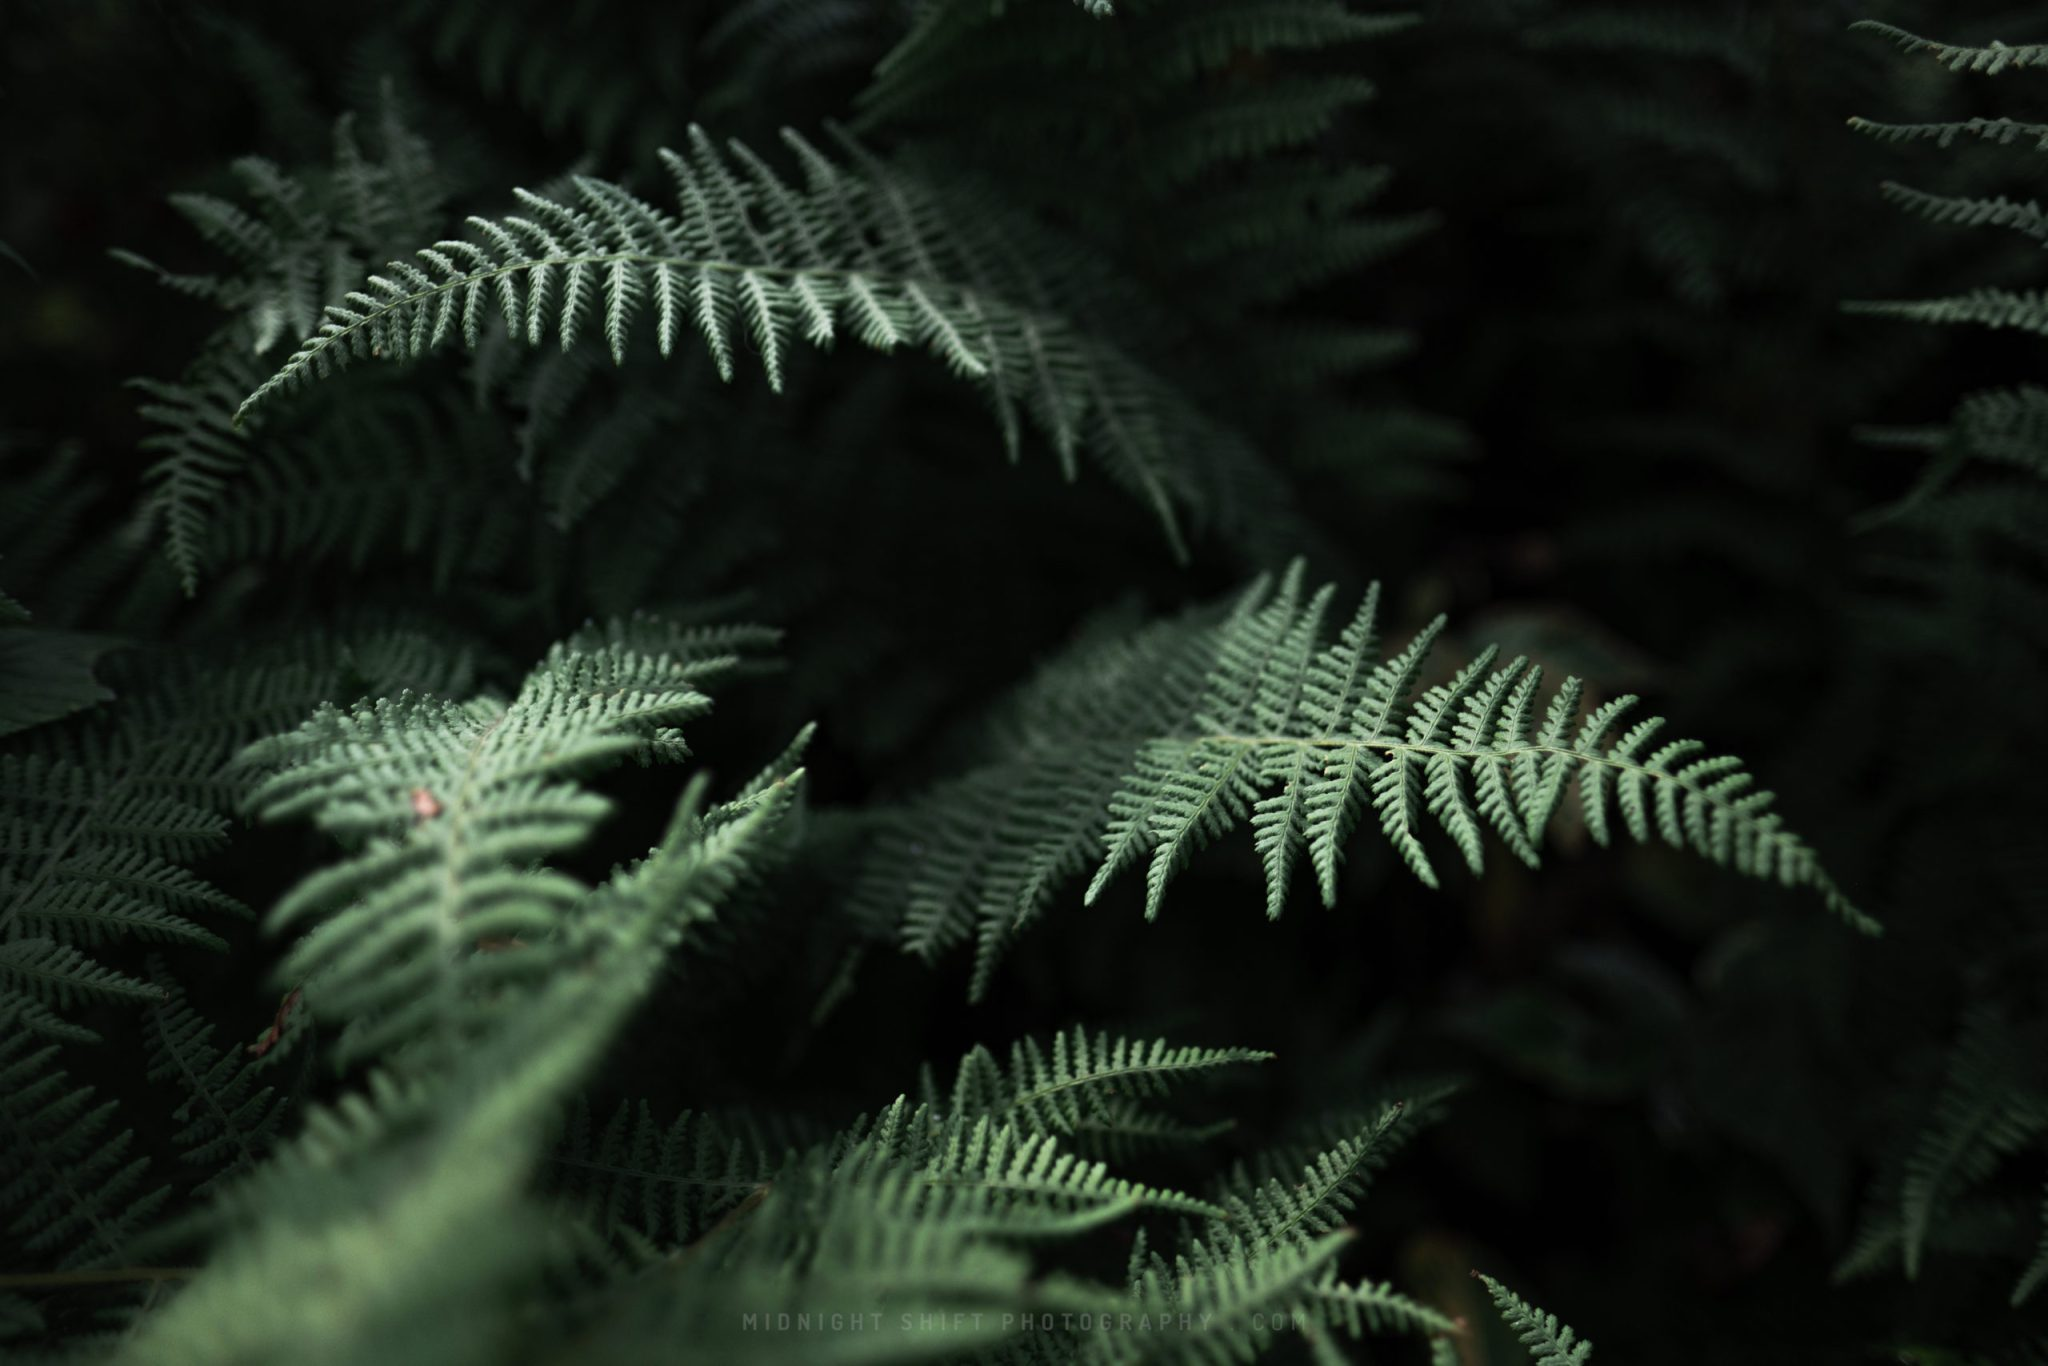 Sun rays shine down on some ferns through the trees